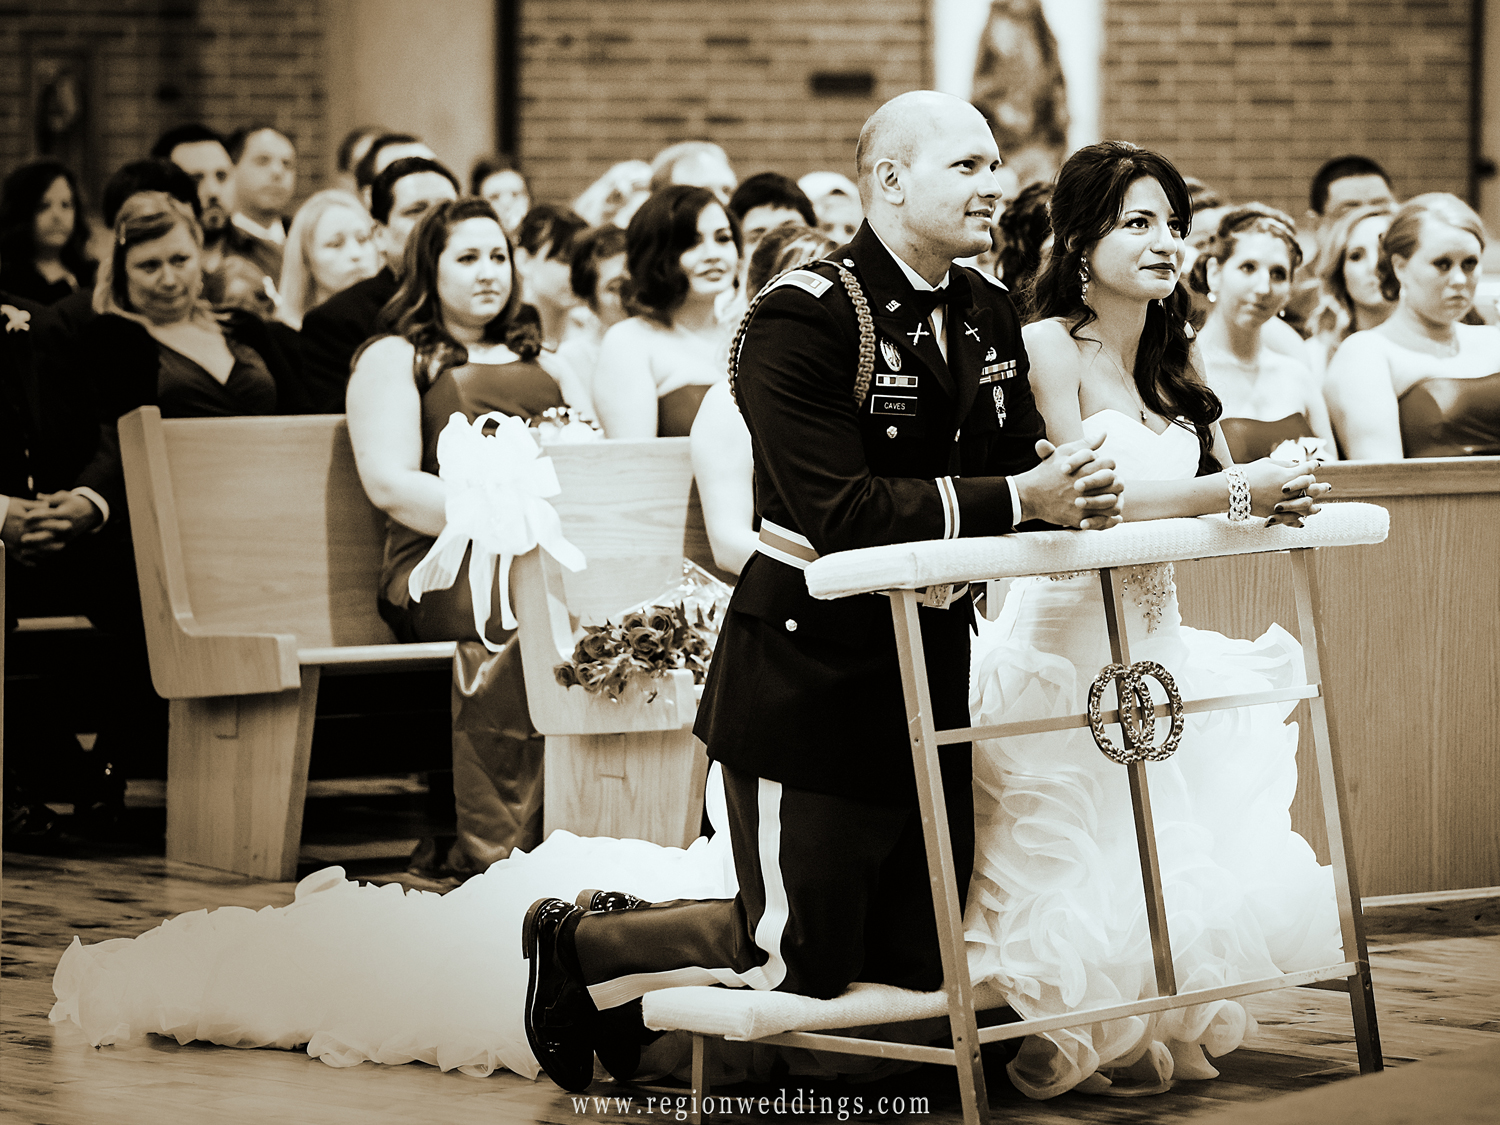 The bride and groom listen to father while kneeling on pews during their wedding ceremony at St. Matthias Church.